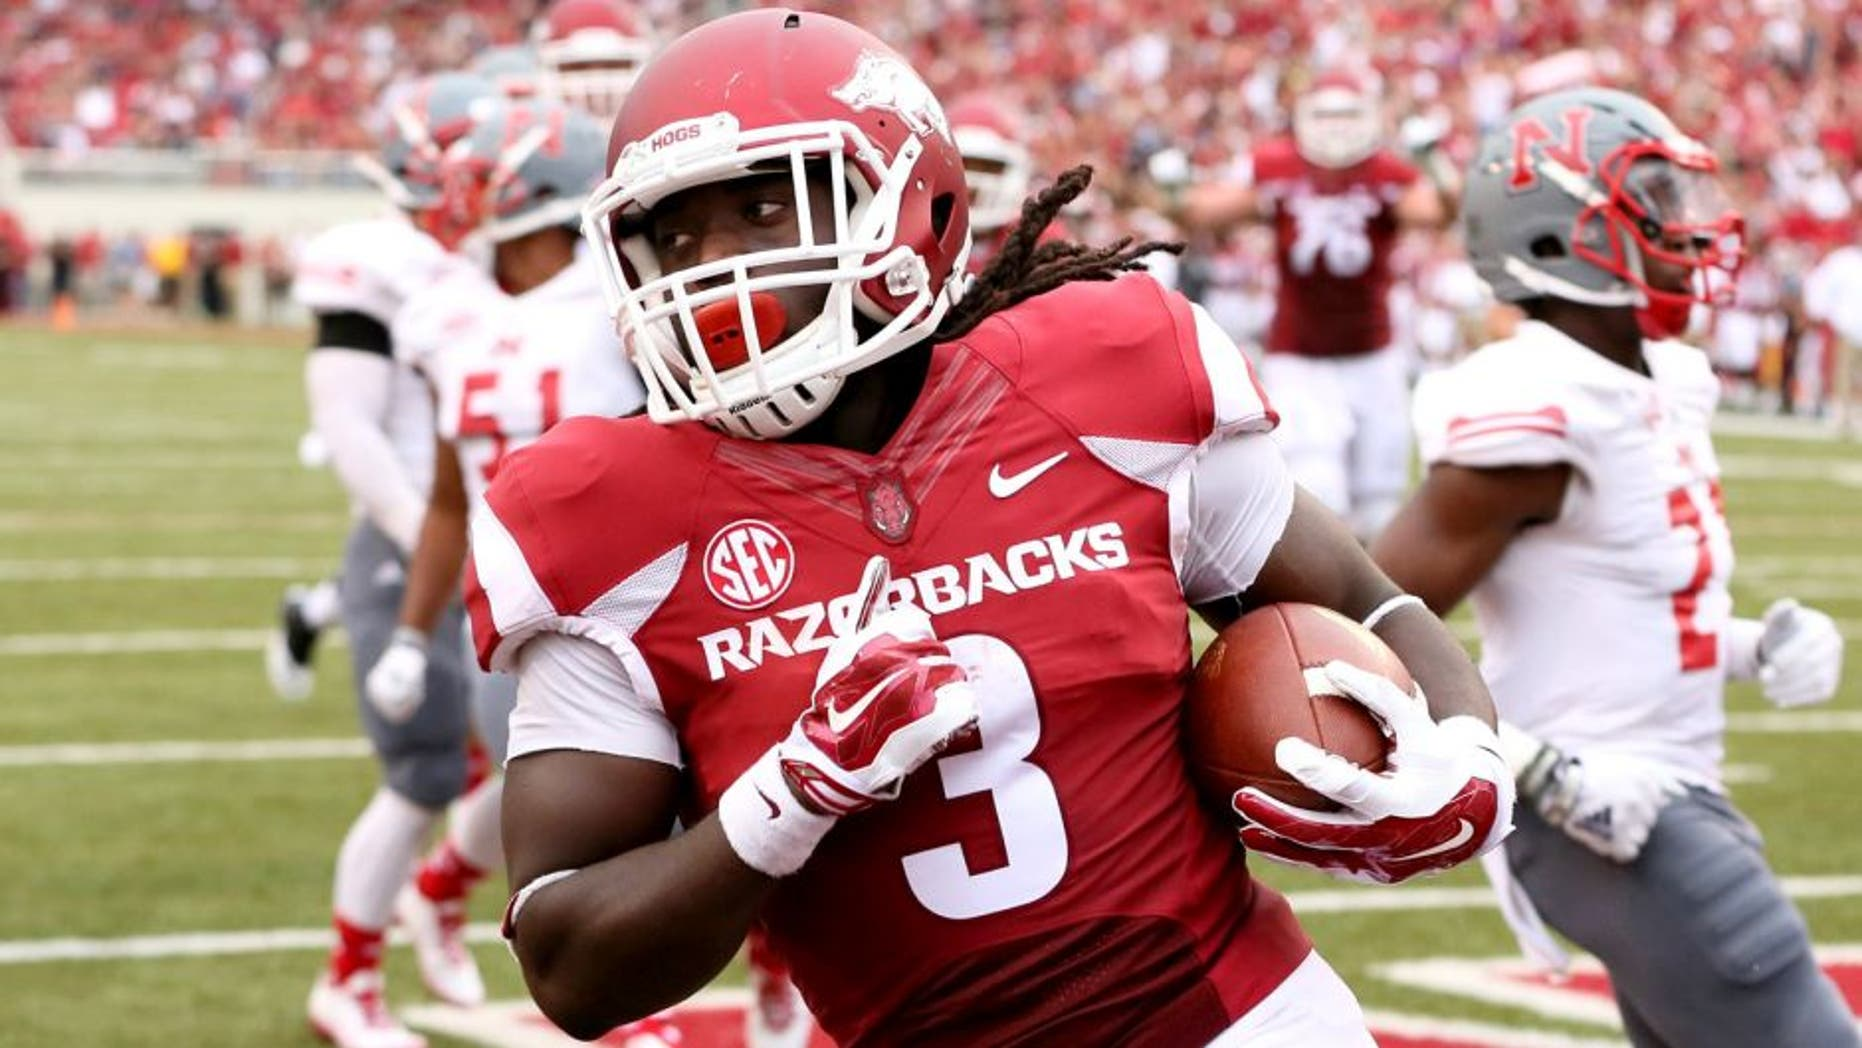 Sep 6, 2014; Fayetteville, AR, USA; Arkansas Razorbacks running back Alex Collins (3) rushes for a touchdown during the second quarter against the Nicholls State Colonels at Donald W. Reynolds Razorback Stadium. Mandatory Credit: Nelson Chenault-USA TODAY Sports